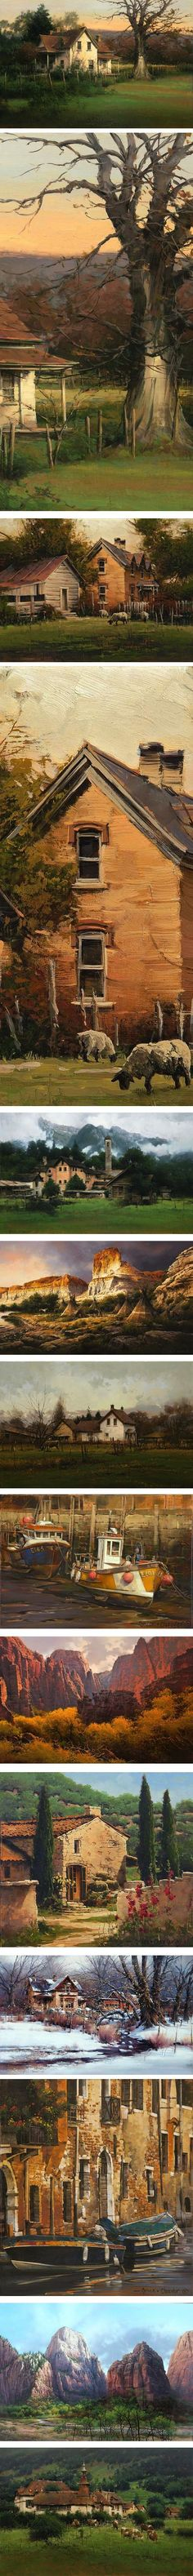 After many years as a successful illustrator, Bruce Cheever changed his focus to gallery art, bringing his admiration for Renaissance art, American Tonalism, Luminism, and Western artists like Thomas Moran to his portrayals of the American West and Southwest, as well as his travels in Italy and other parts of Europe.